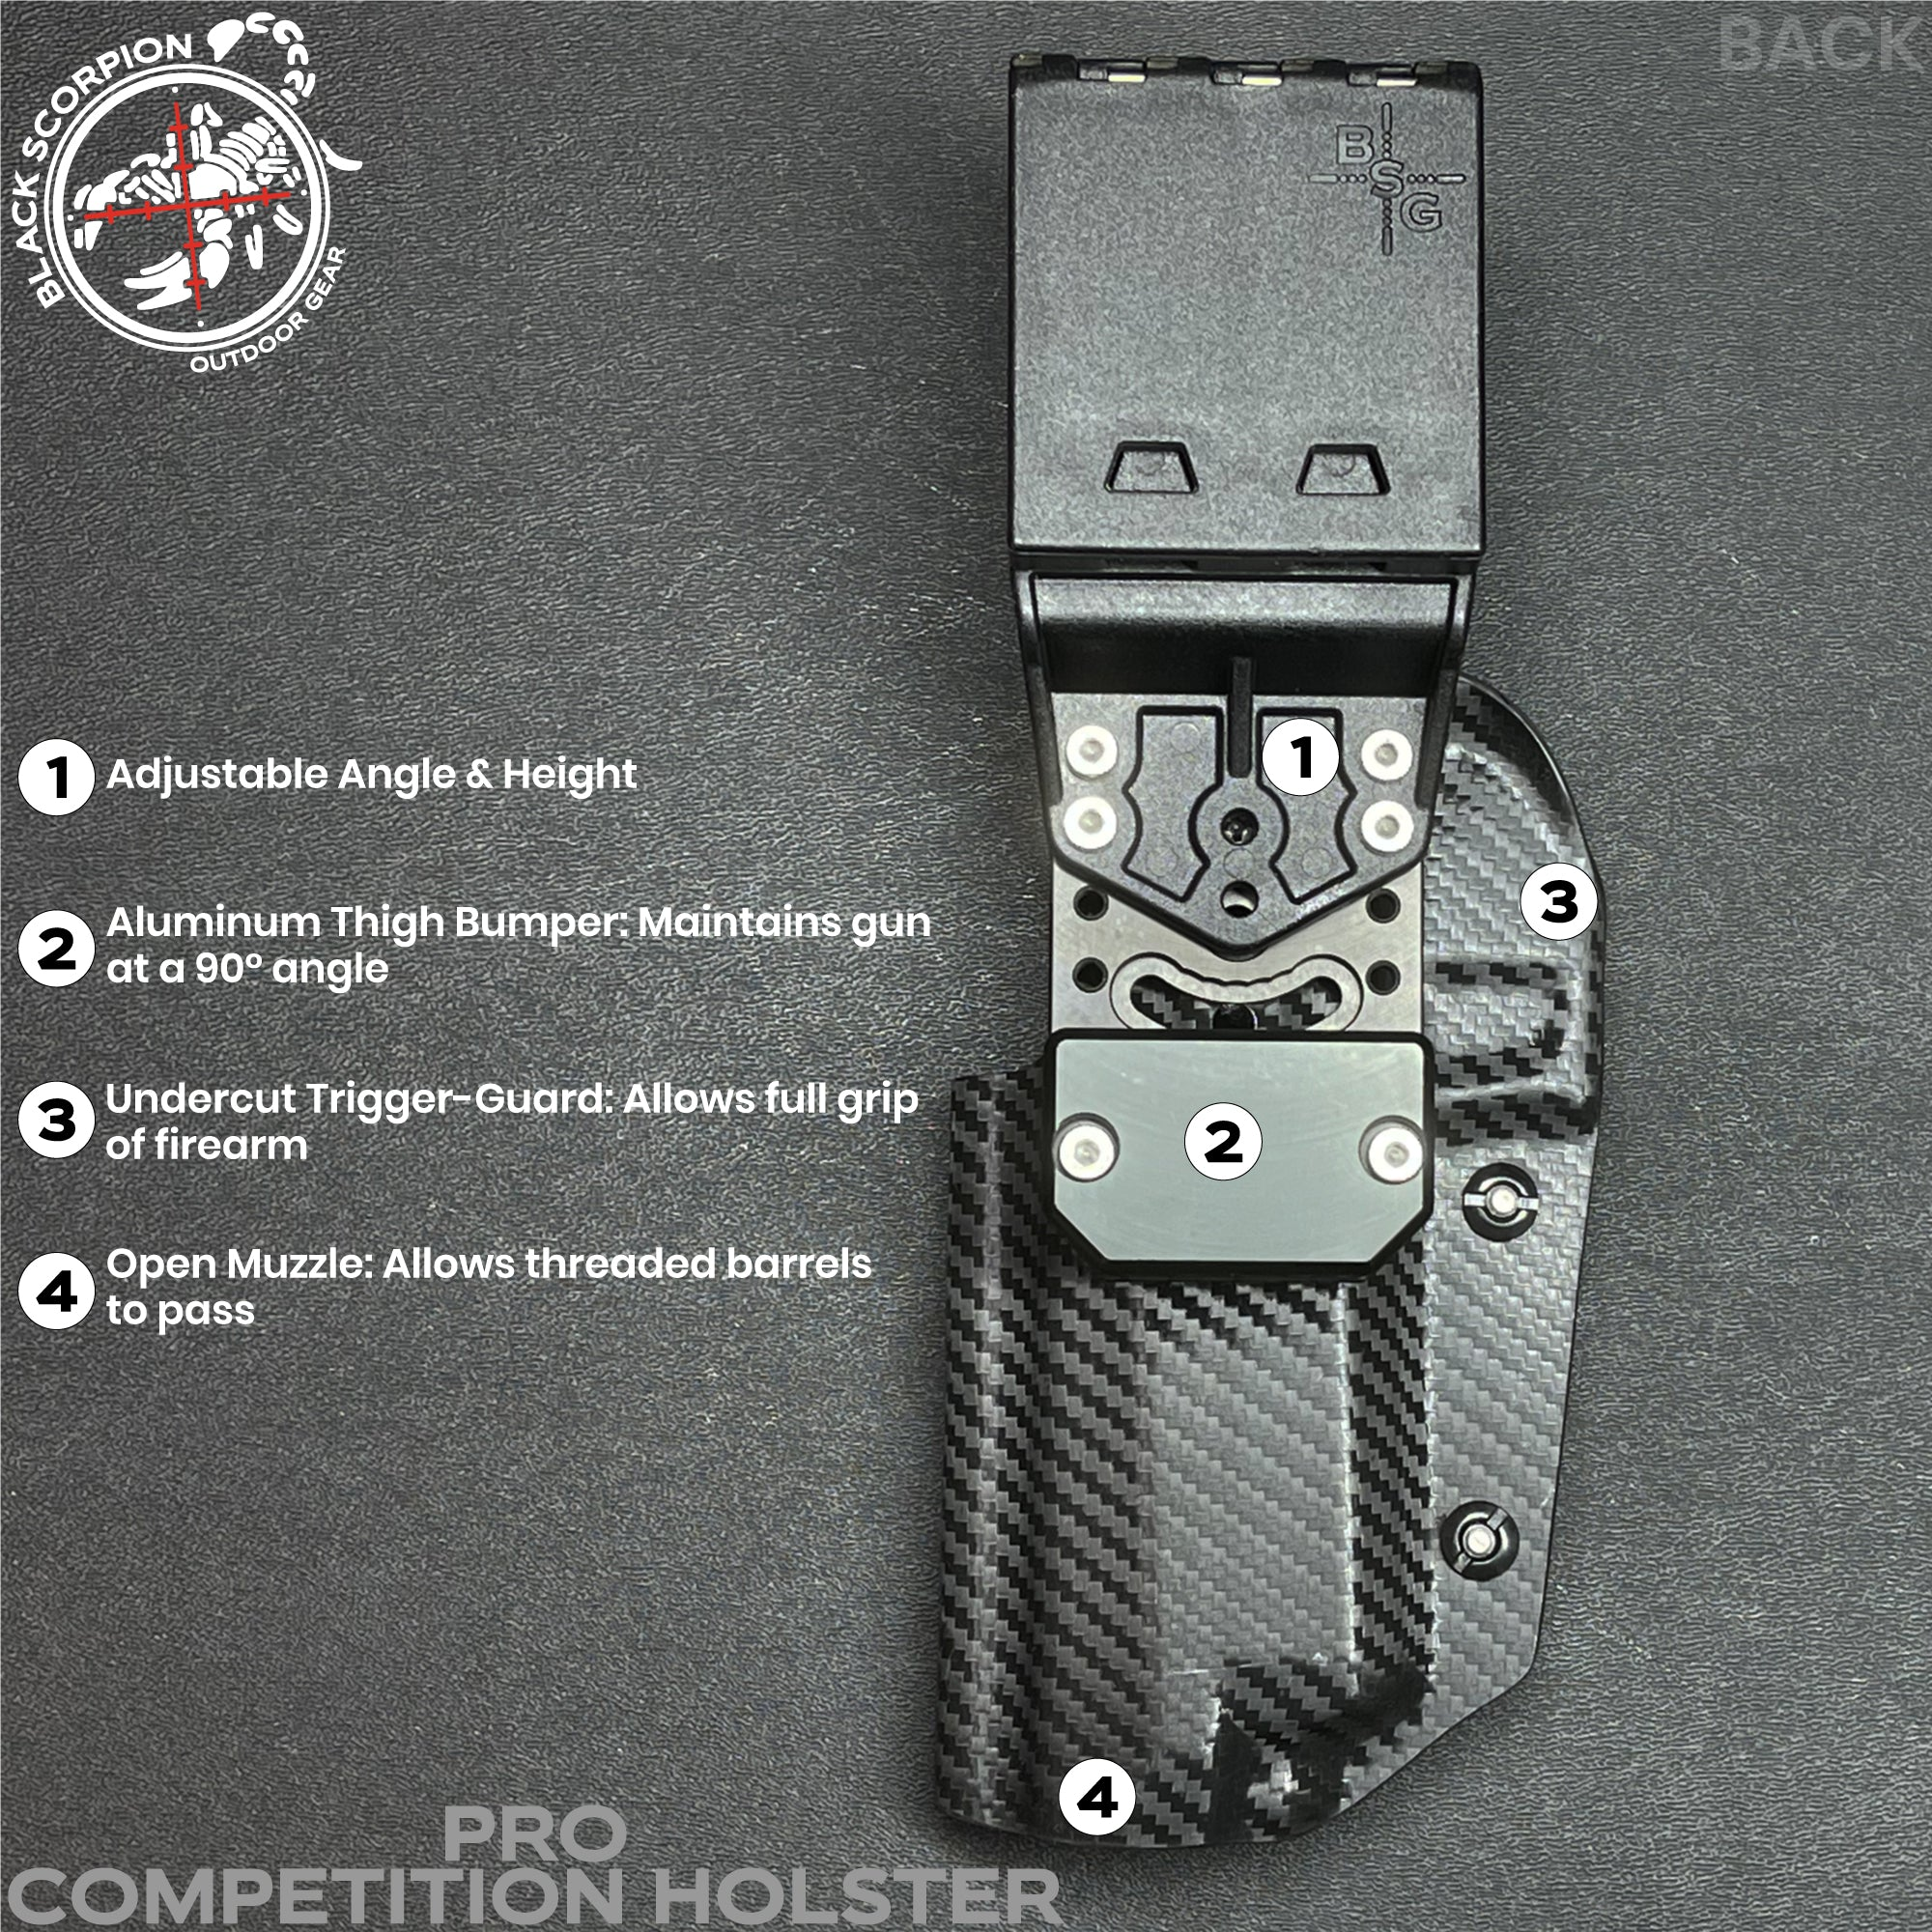 pro-comp-holster-diagram-back